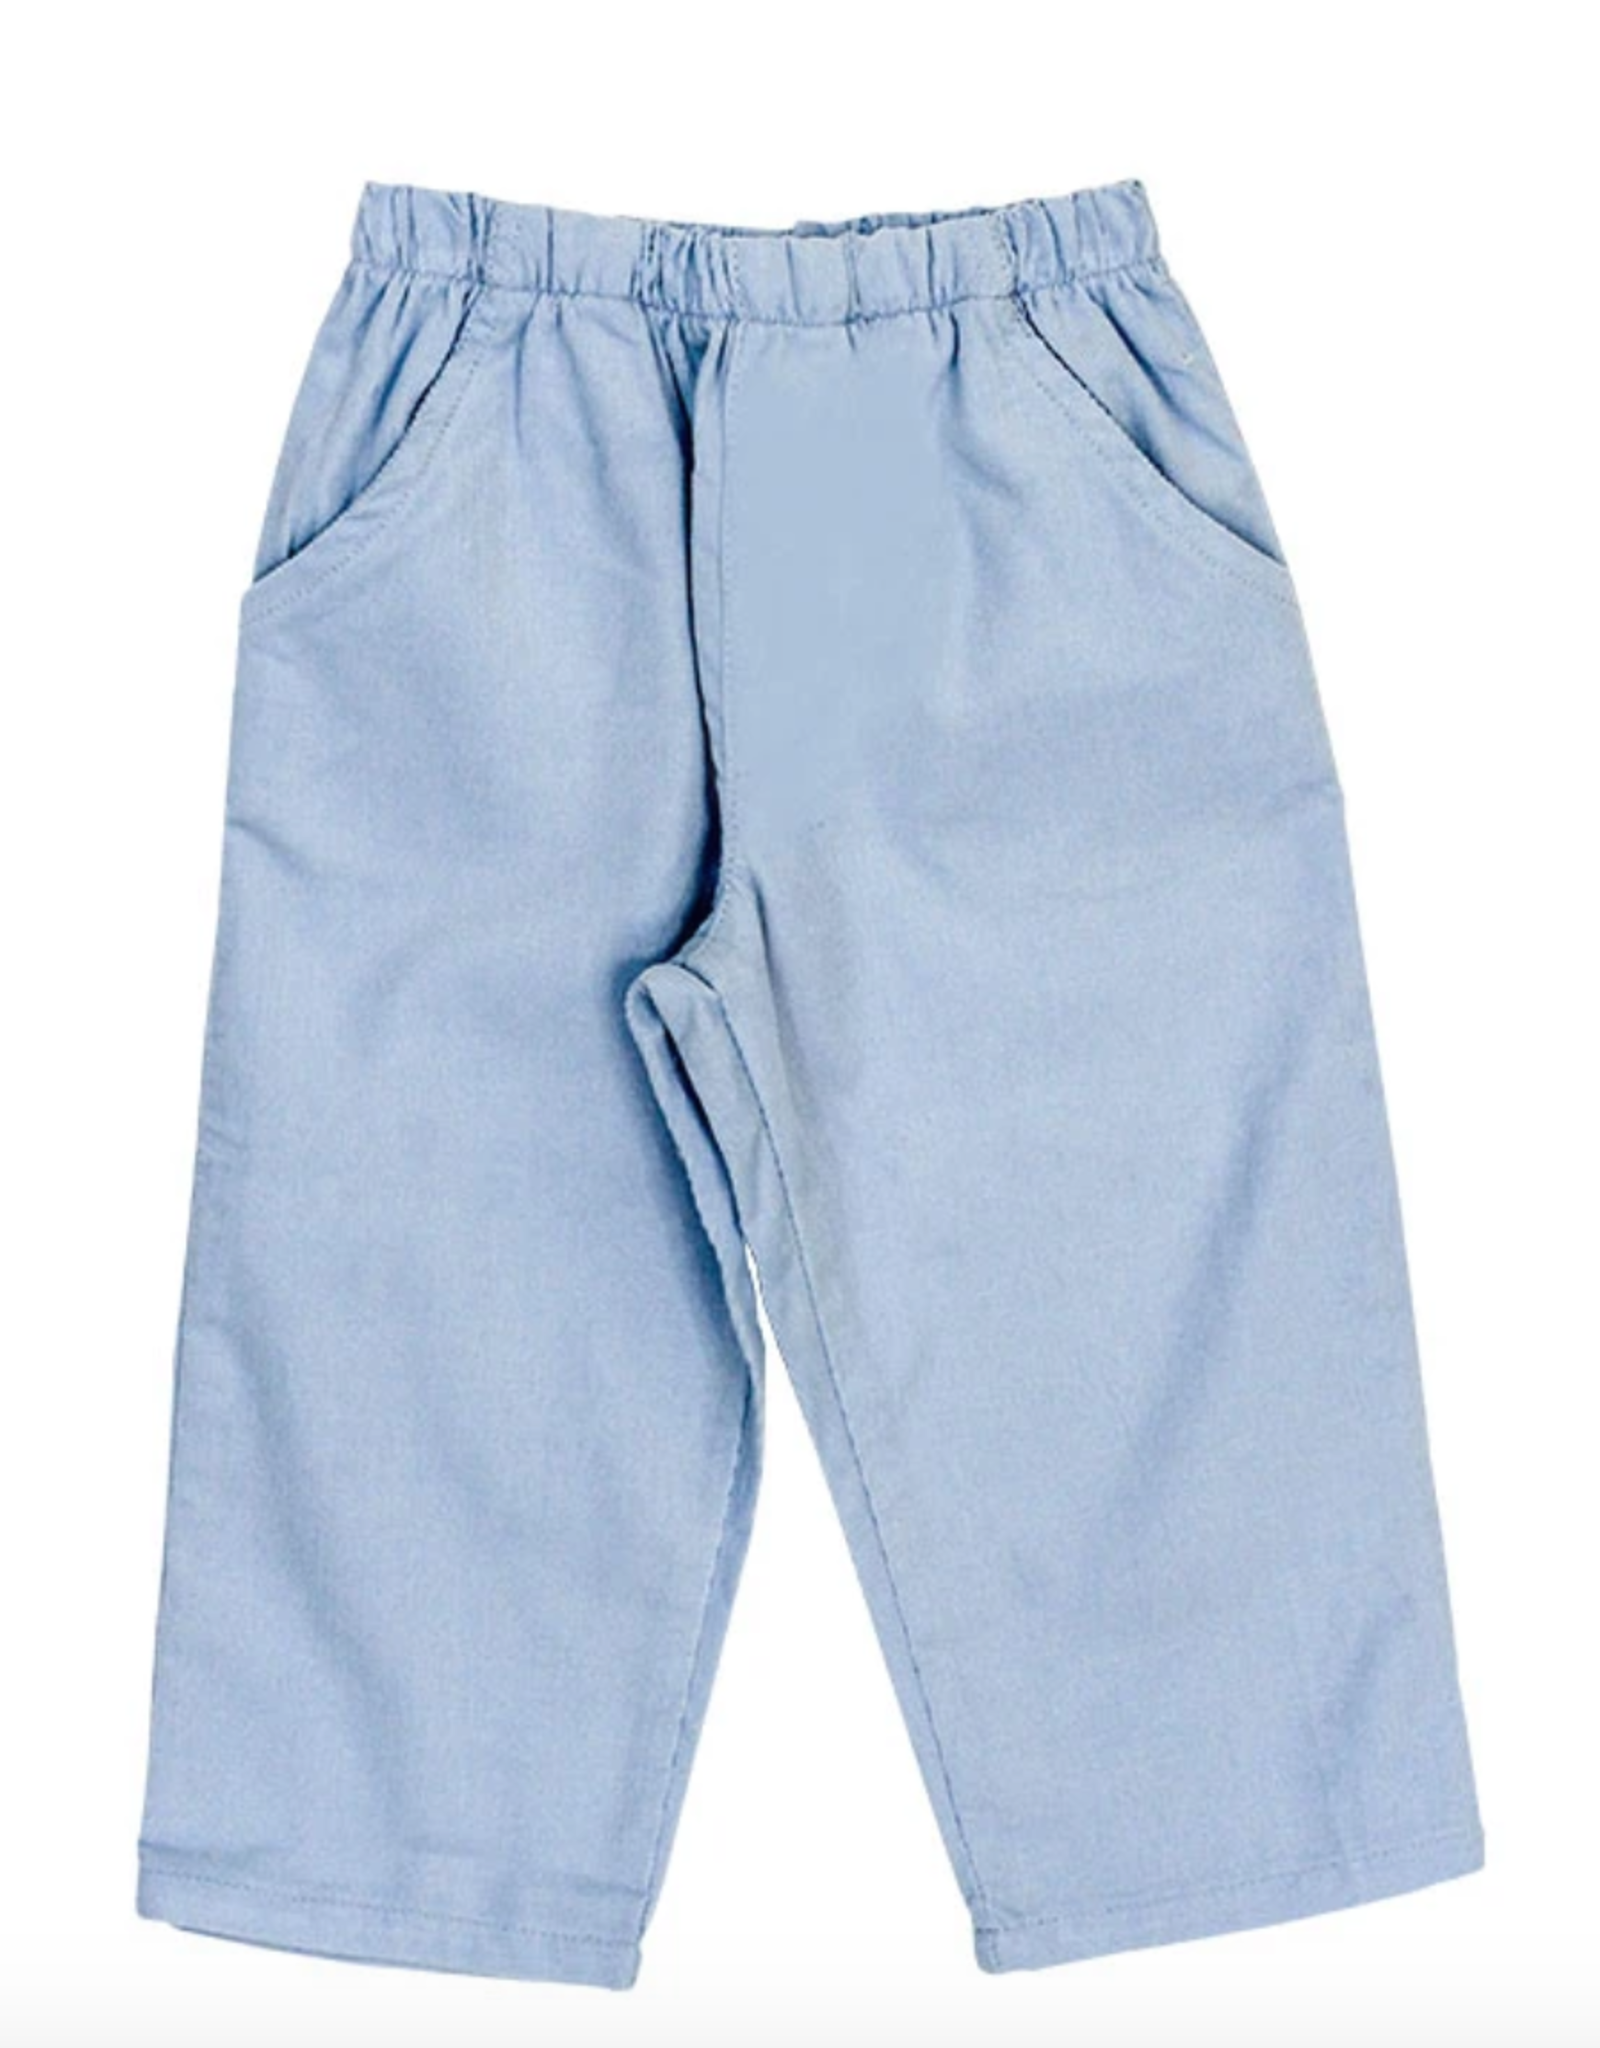 The Bailey Boys Light Blue Cord Elastic Pants